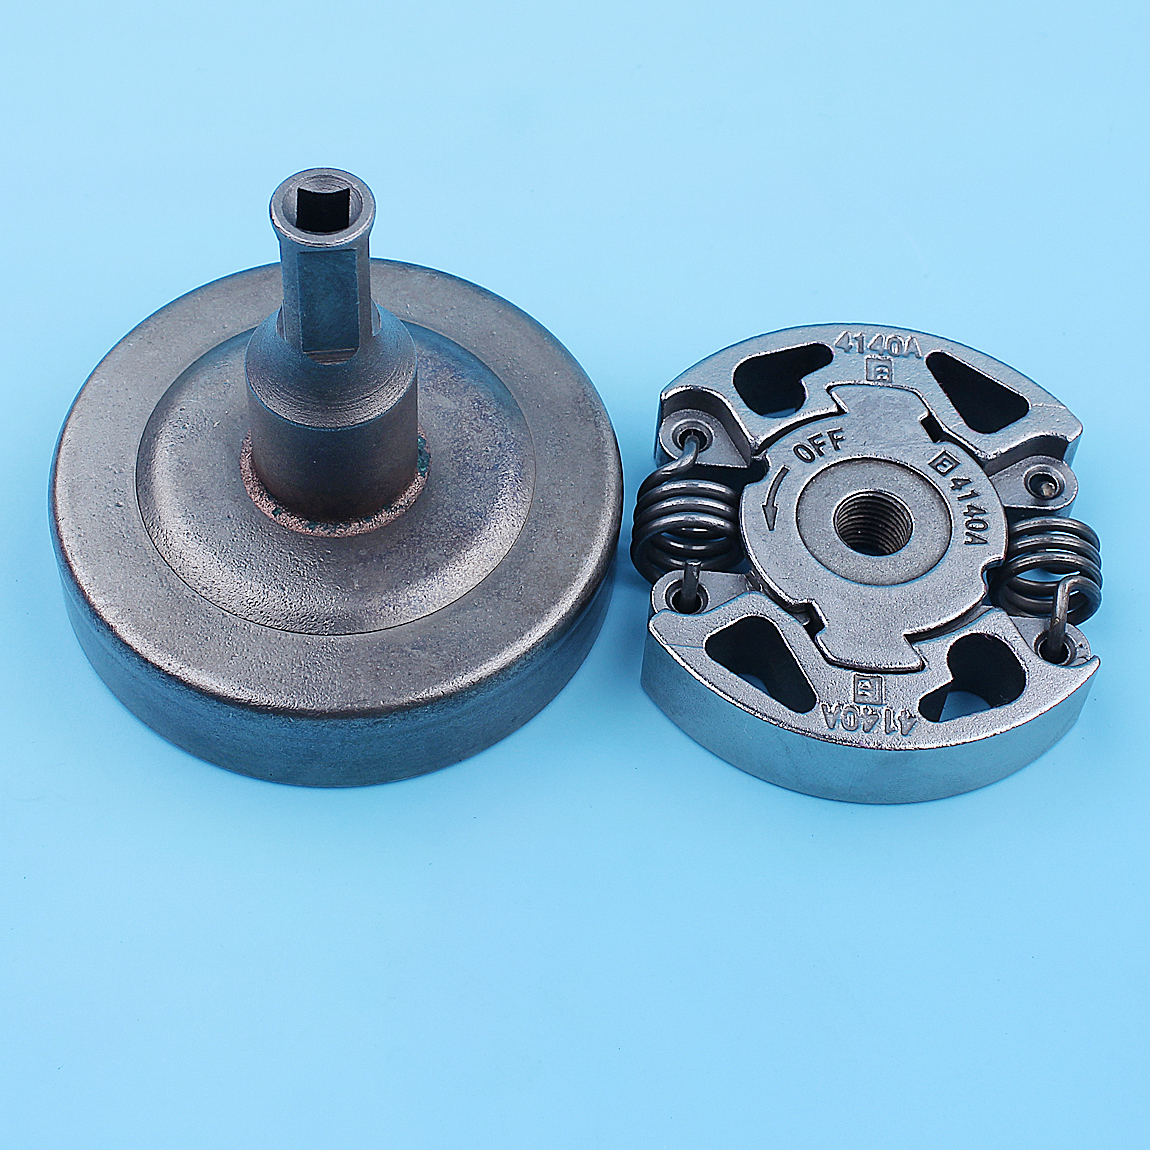 Clutch Drum Kit For <font><b>Stihl</b></font> <font><b>FS38</b></font> FS40 FS45 FS46 FS50 FS55 FS56 FS70 Brushcutter String Trimmer Strimmer Replacement Spare Parts image